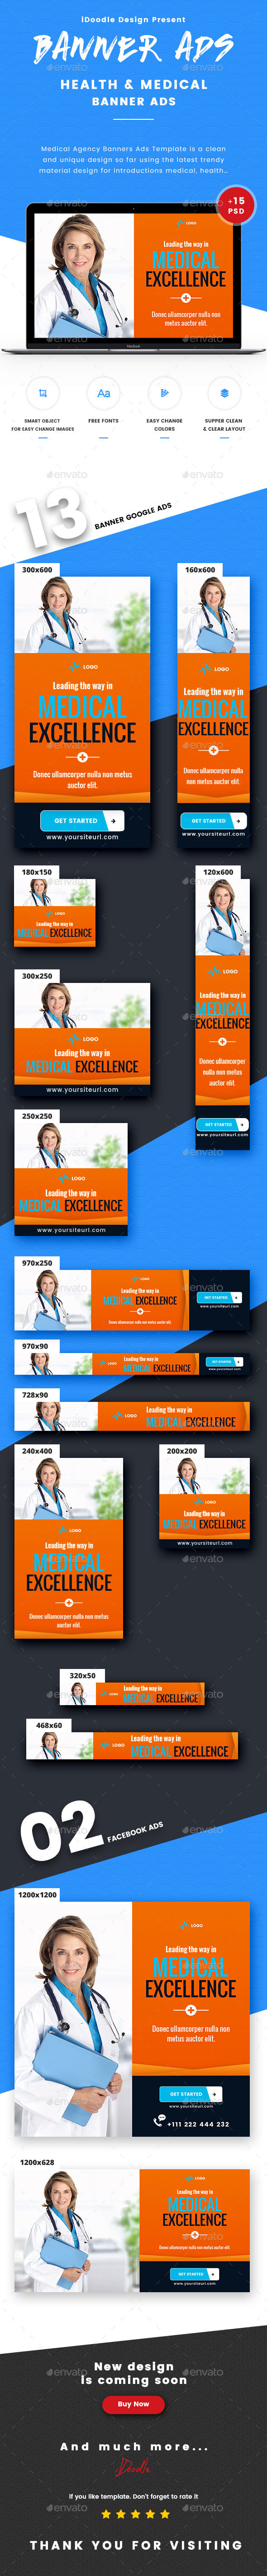 GraphicRiver Health & Medical Banners Ads 21009683